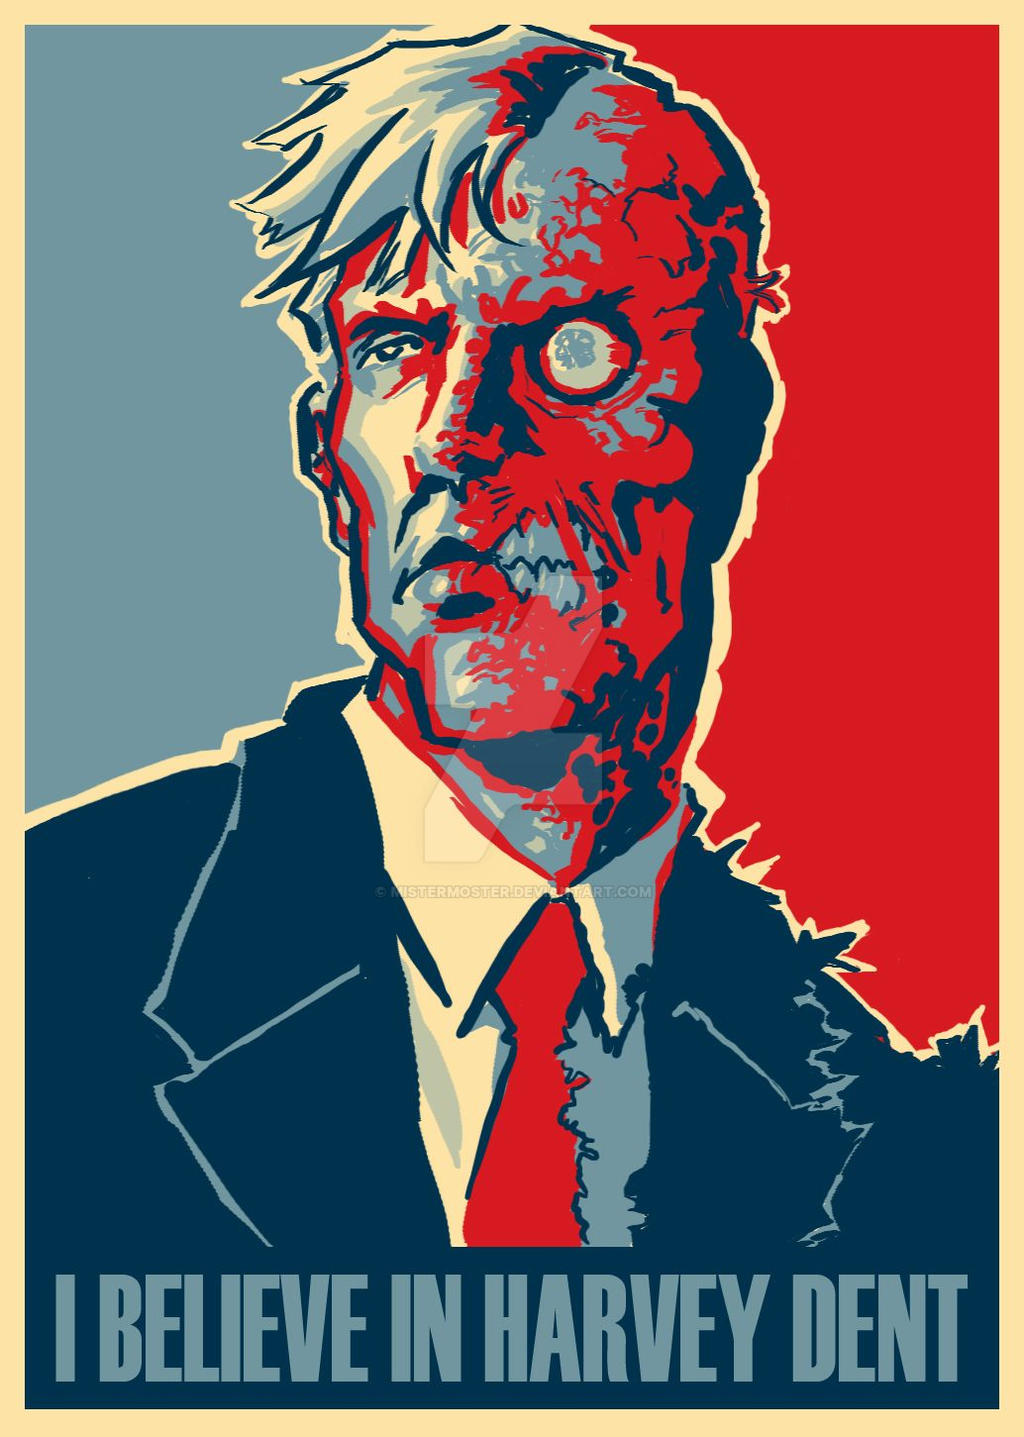 I believe in Harvey Dent by mistermoster